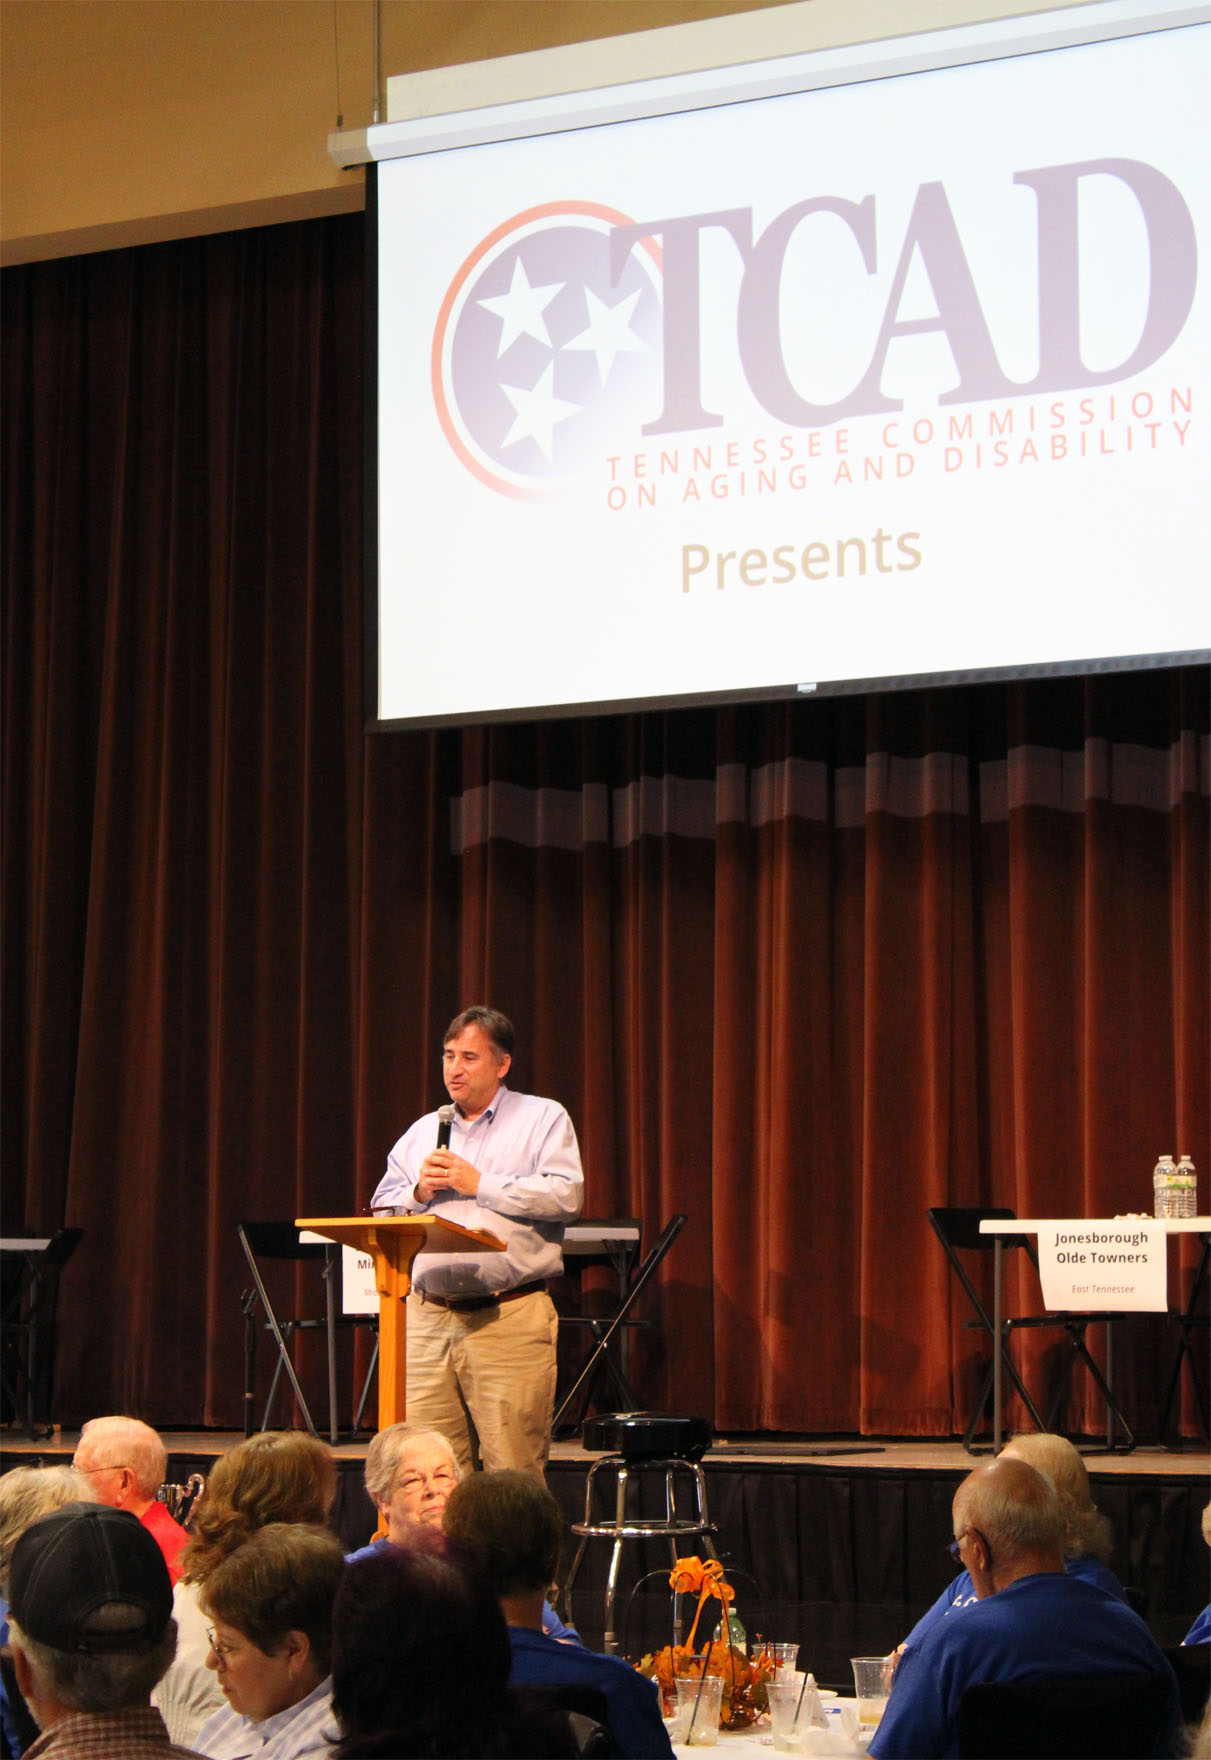 TCAD Director Jim Shulman warms up the audience.